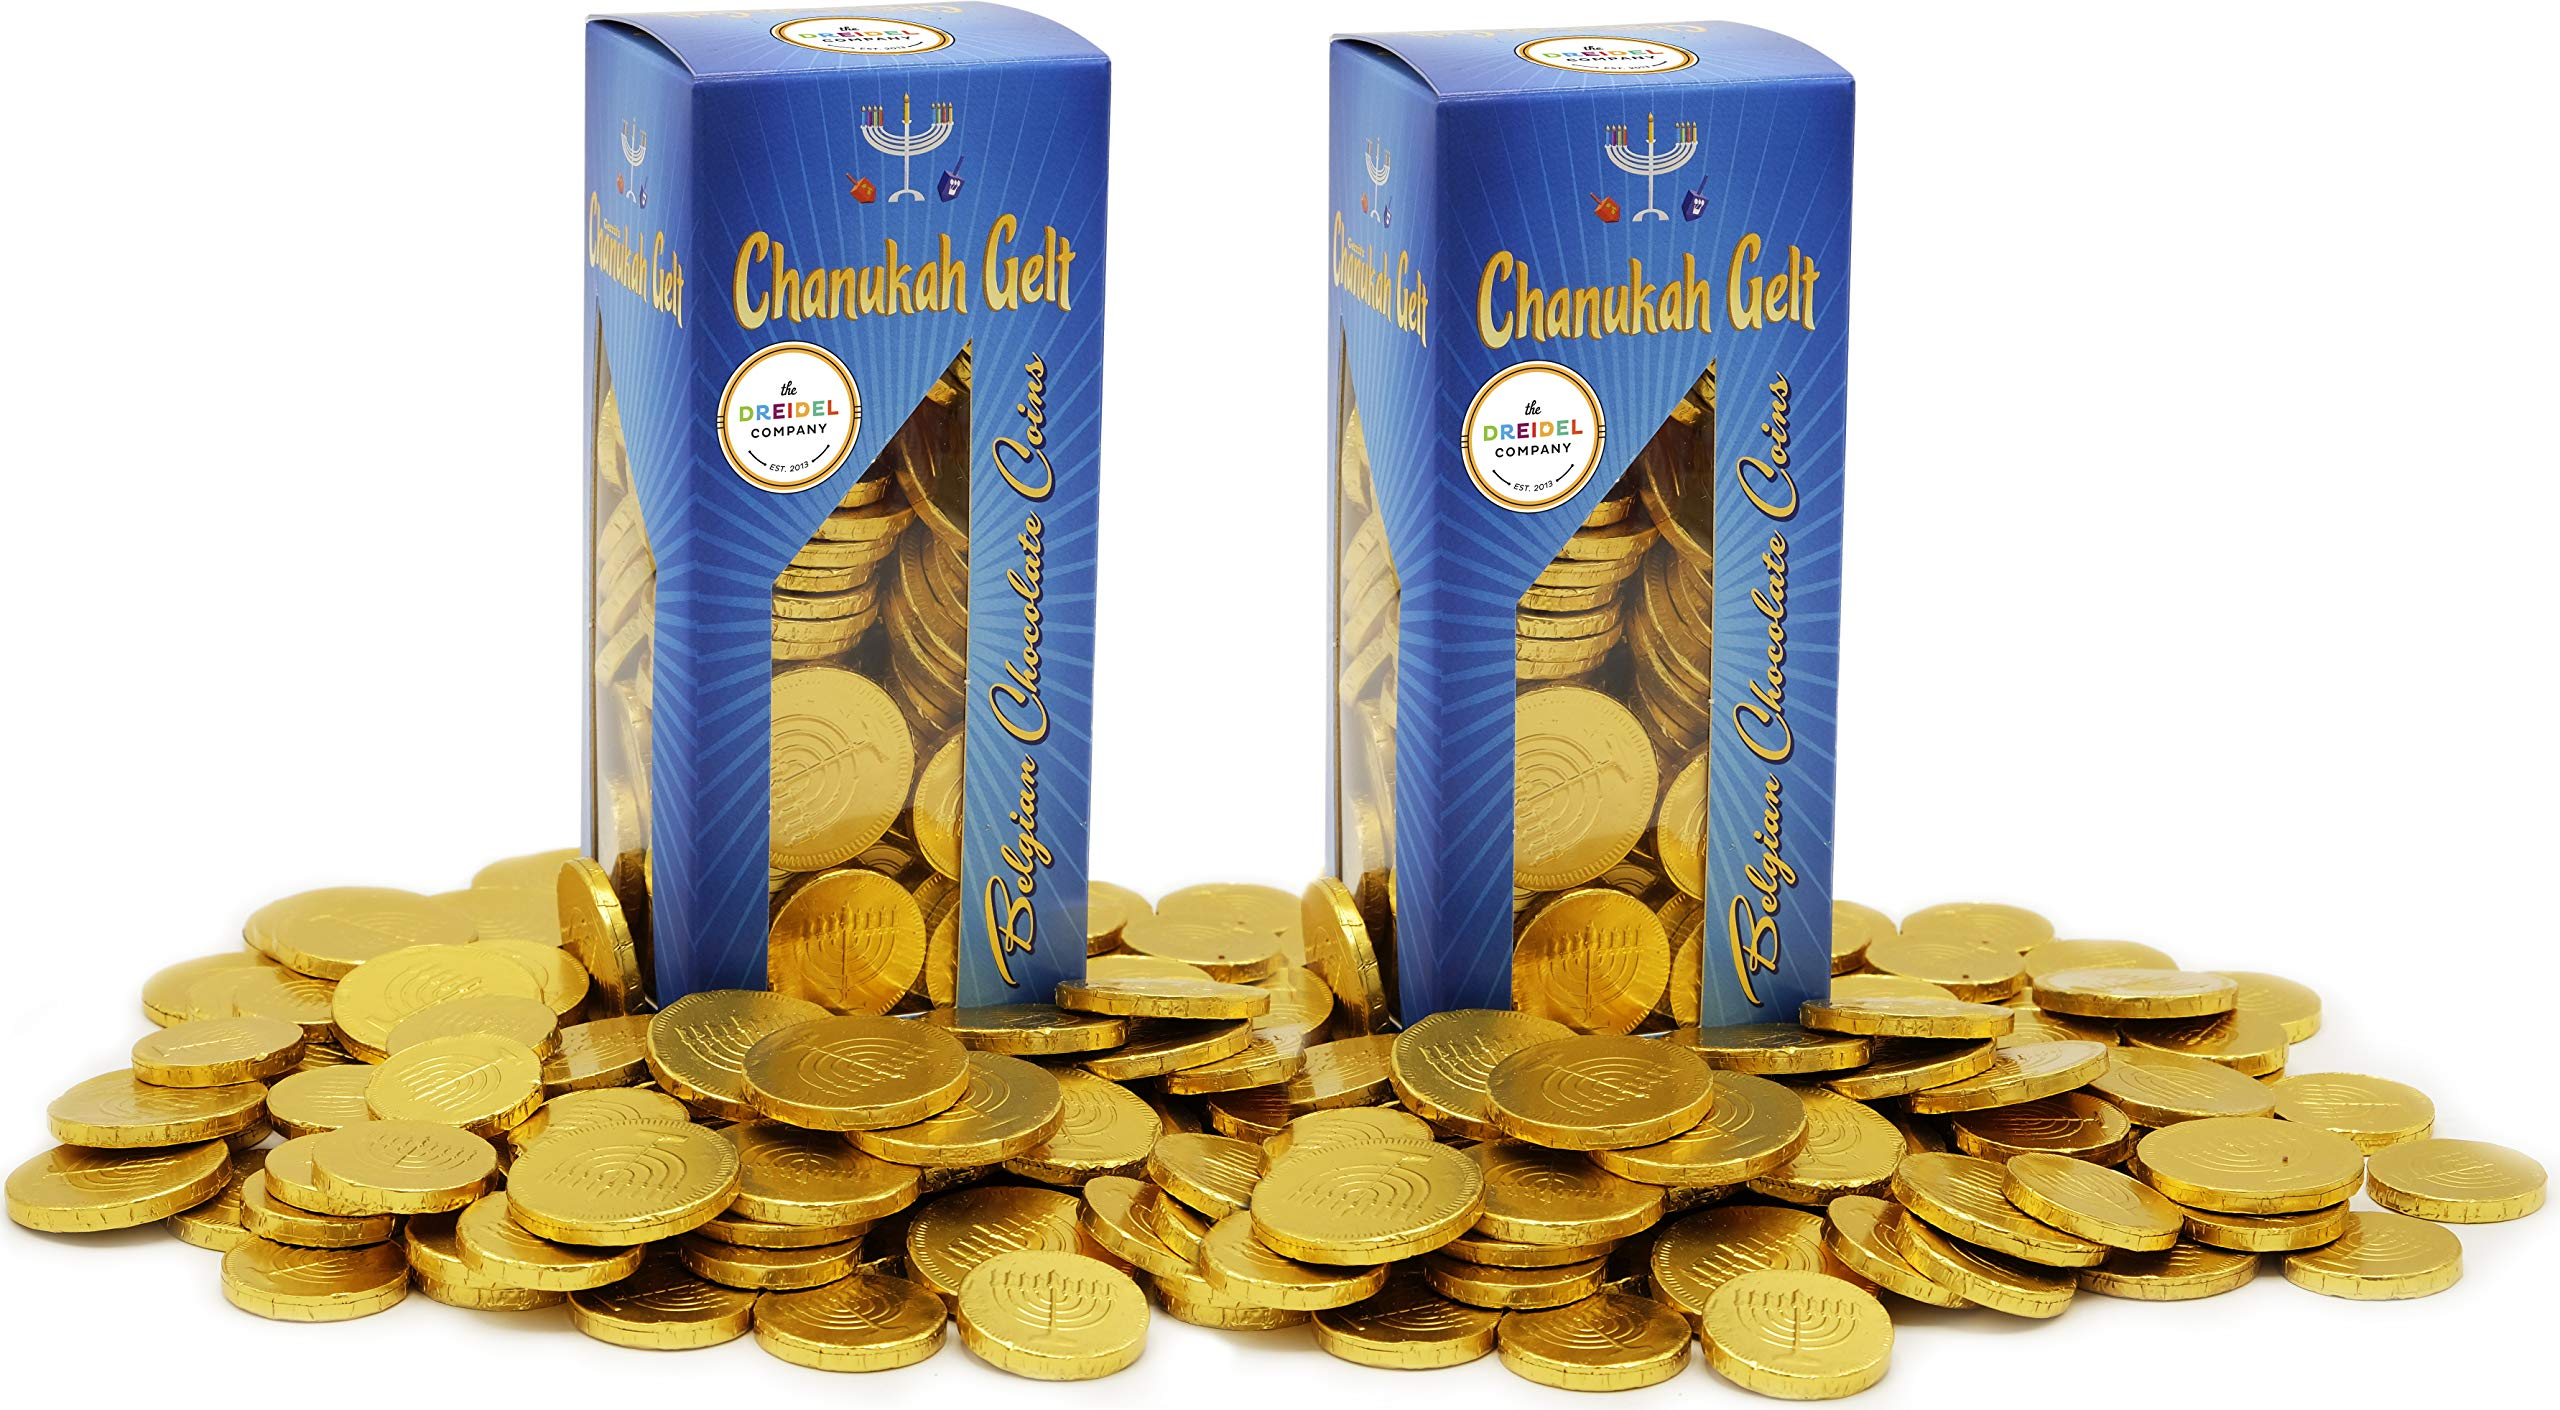 Hanukkah Chocolate Gelt - Nut Free - Belgian Milk Chocolate Coins - 2LB - Over 200 Coins - OU D Kosher Chanukah Gelt (2-Pack) by The Dreidel Company